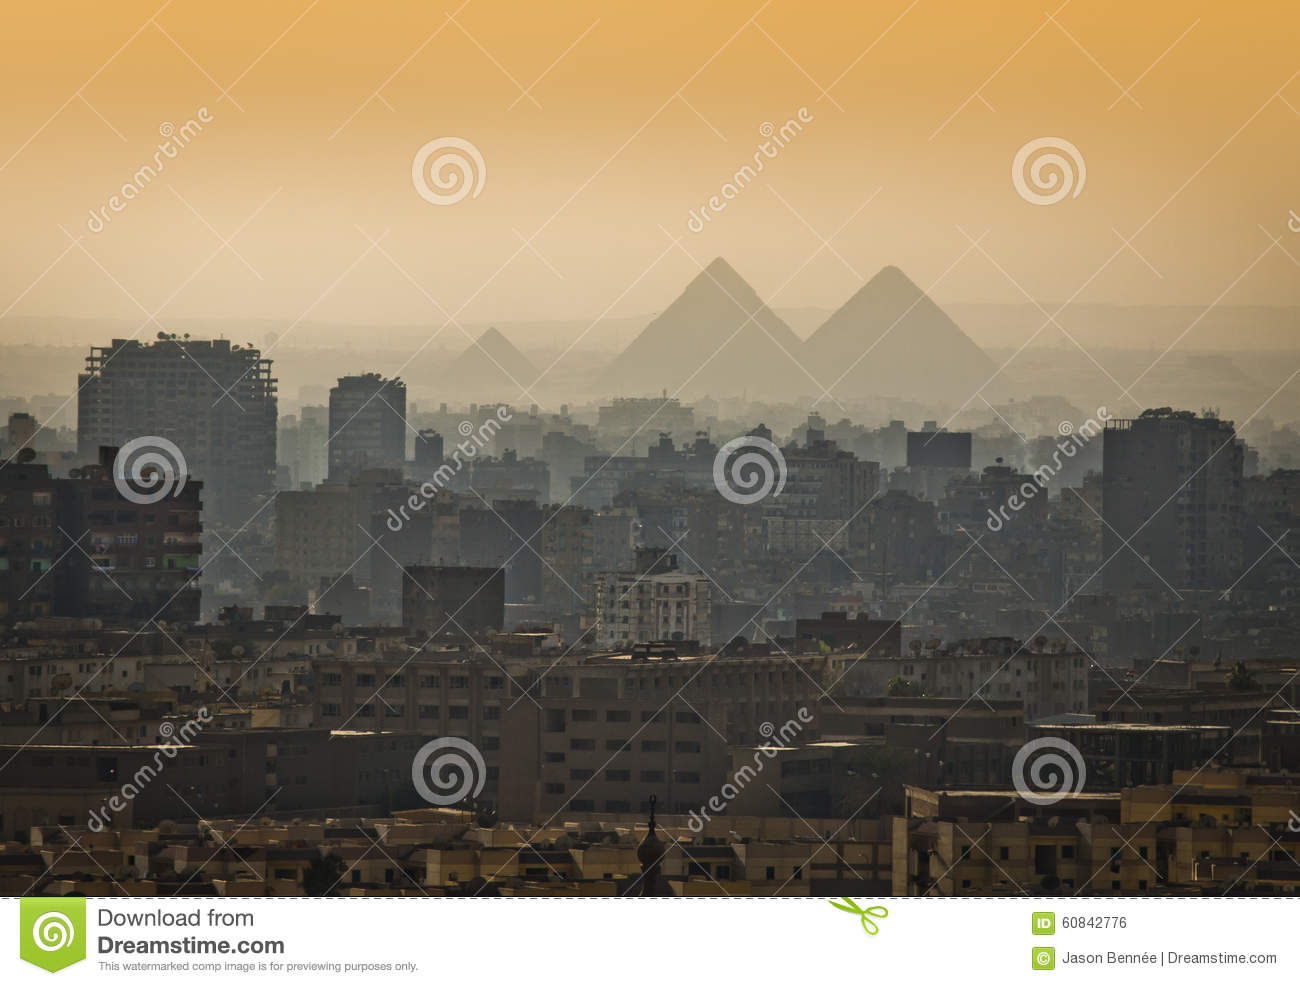 Pyramids in the mist.